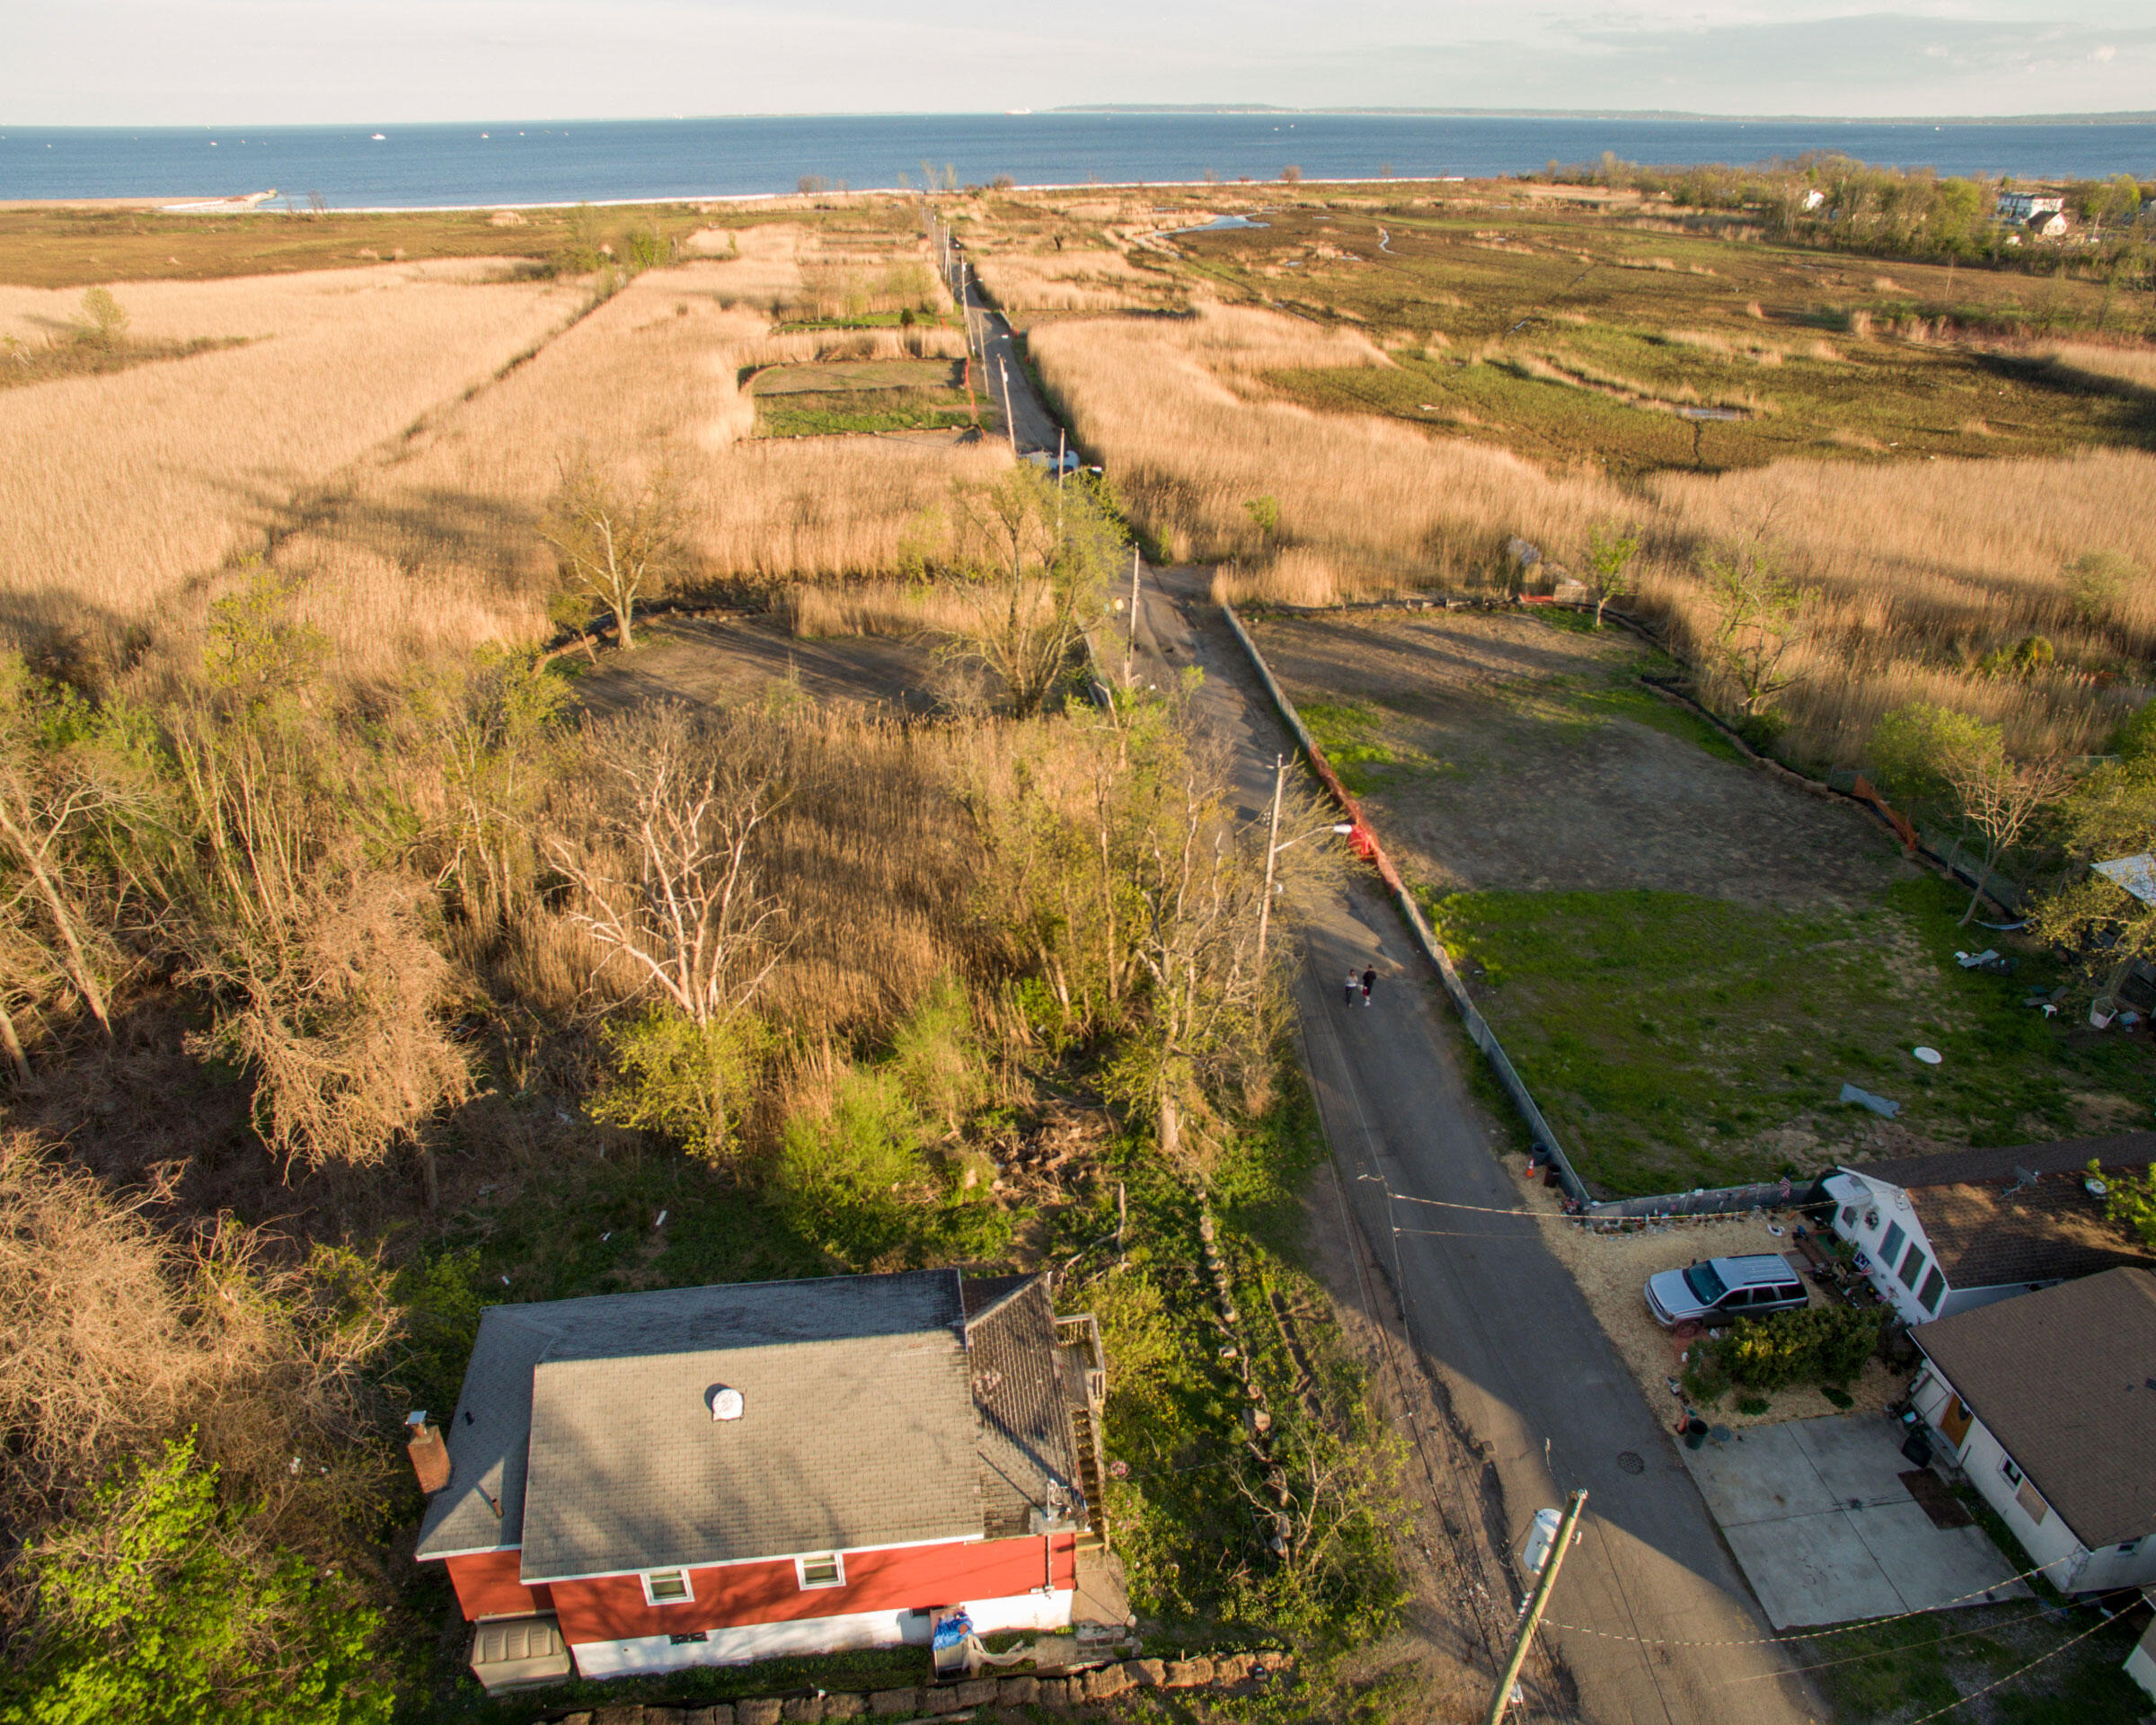 Oakwood Beach's Kissam Avenue was once a quiet street lined with bungalows and beach houses. Today, Kissam Avenue remains a quiet street, but it's now lined with marshland and regrowing lots. April 23, 2016. Hillary Eggers